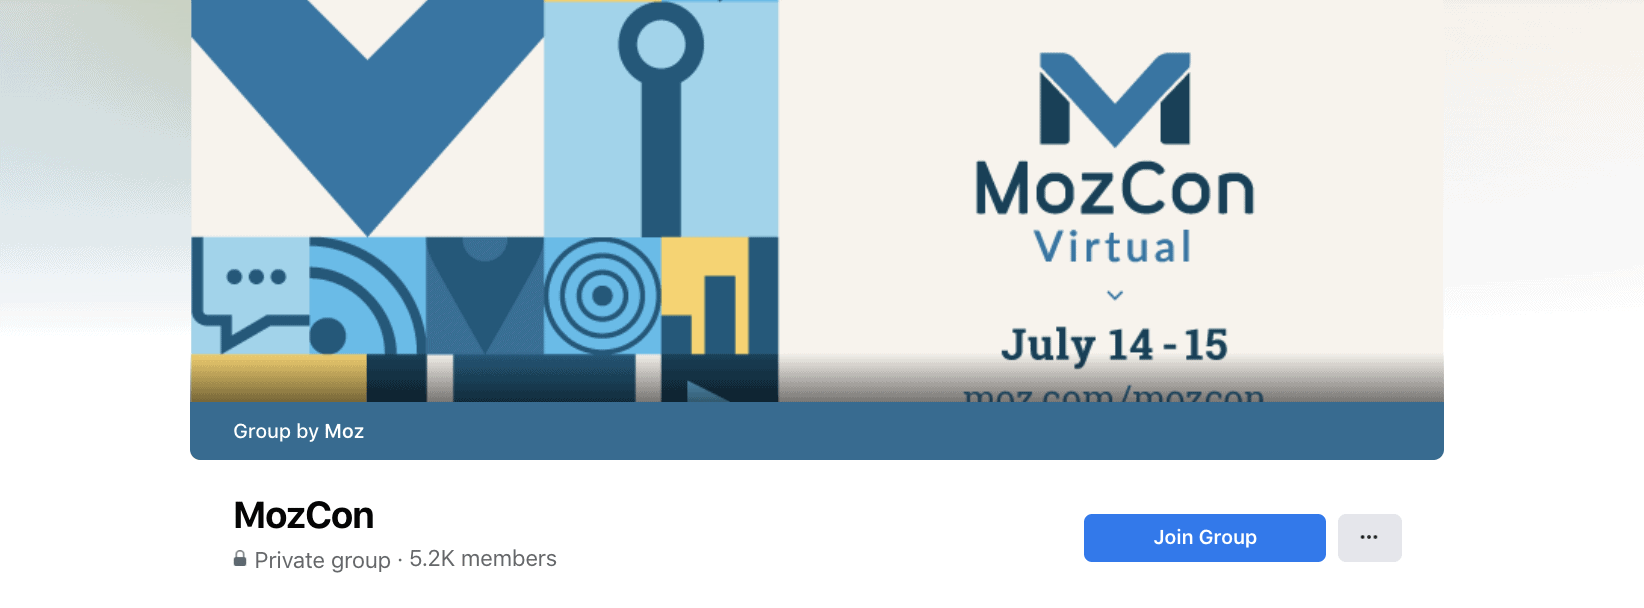 MozCon is encouraging socialization and networking at their virtual event.